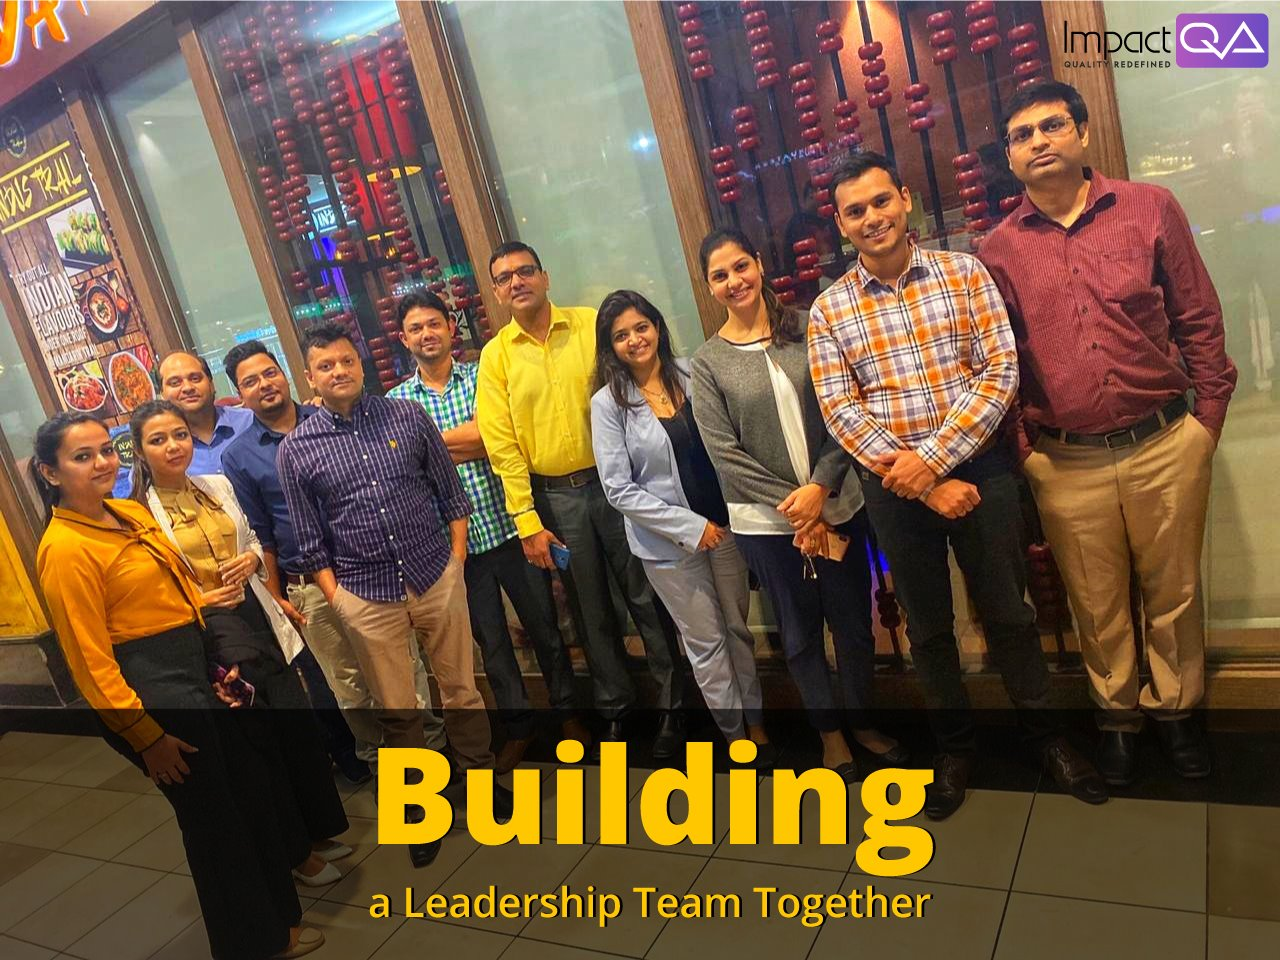 We build a strong leadership team in ImpactQA